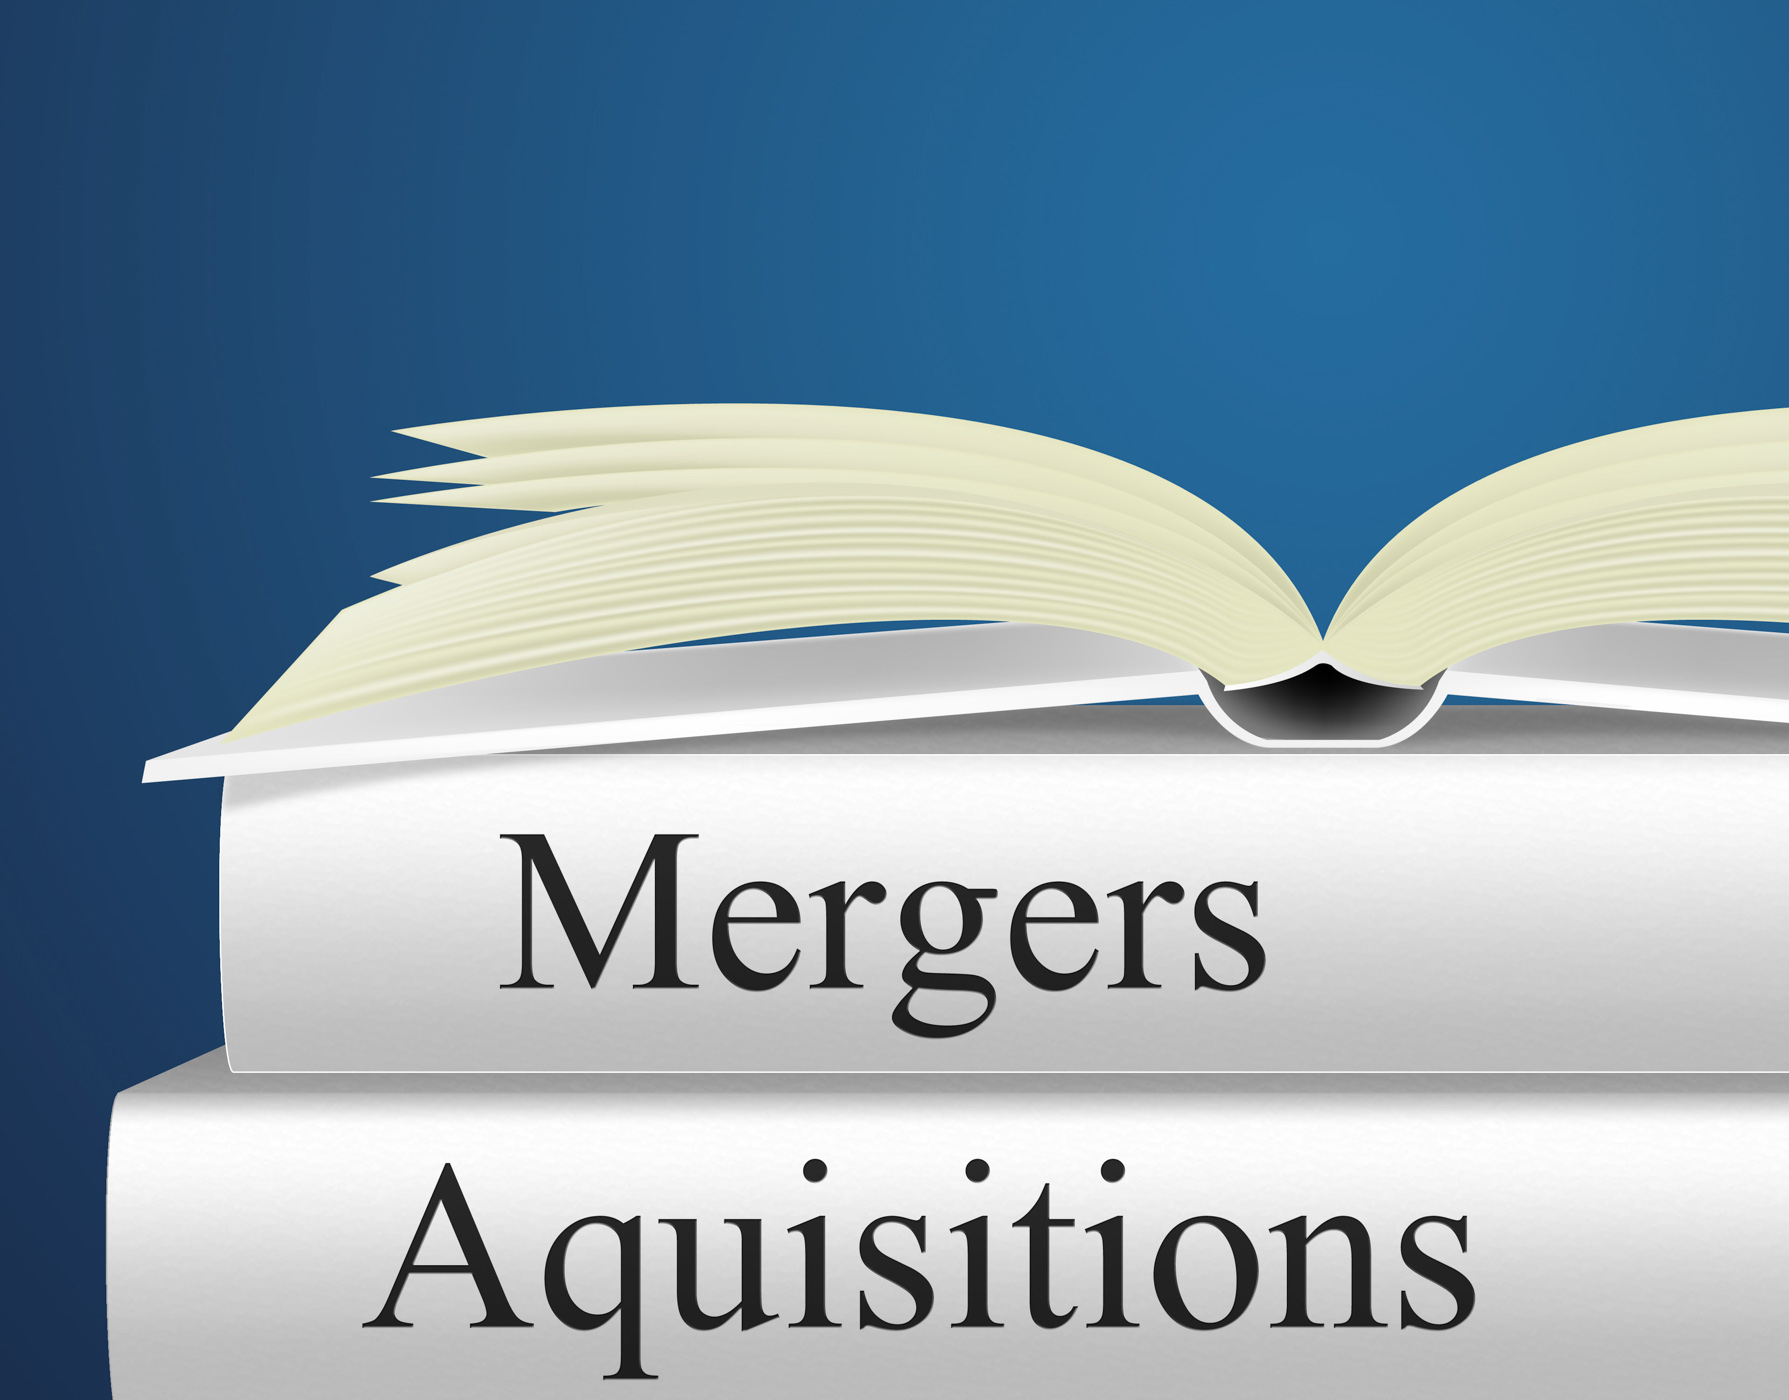 Aquisitions mergers represents link up and alliance photo